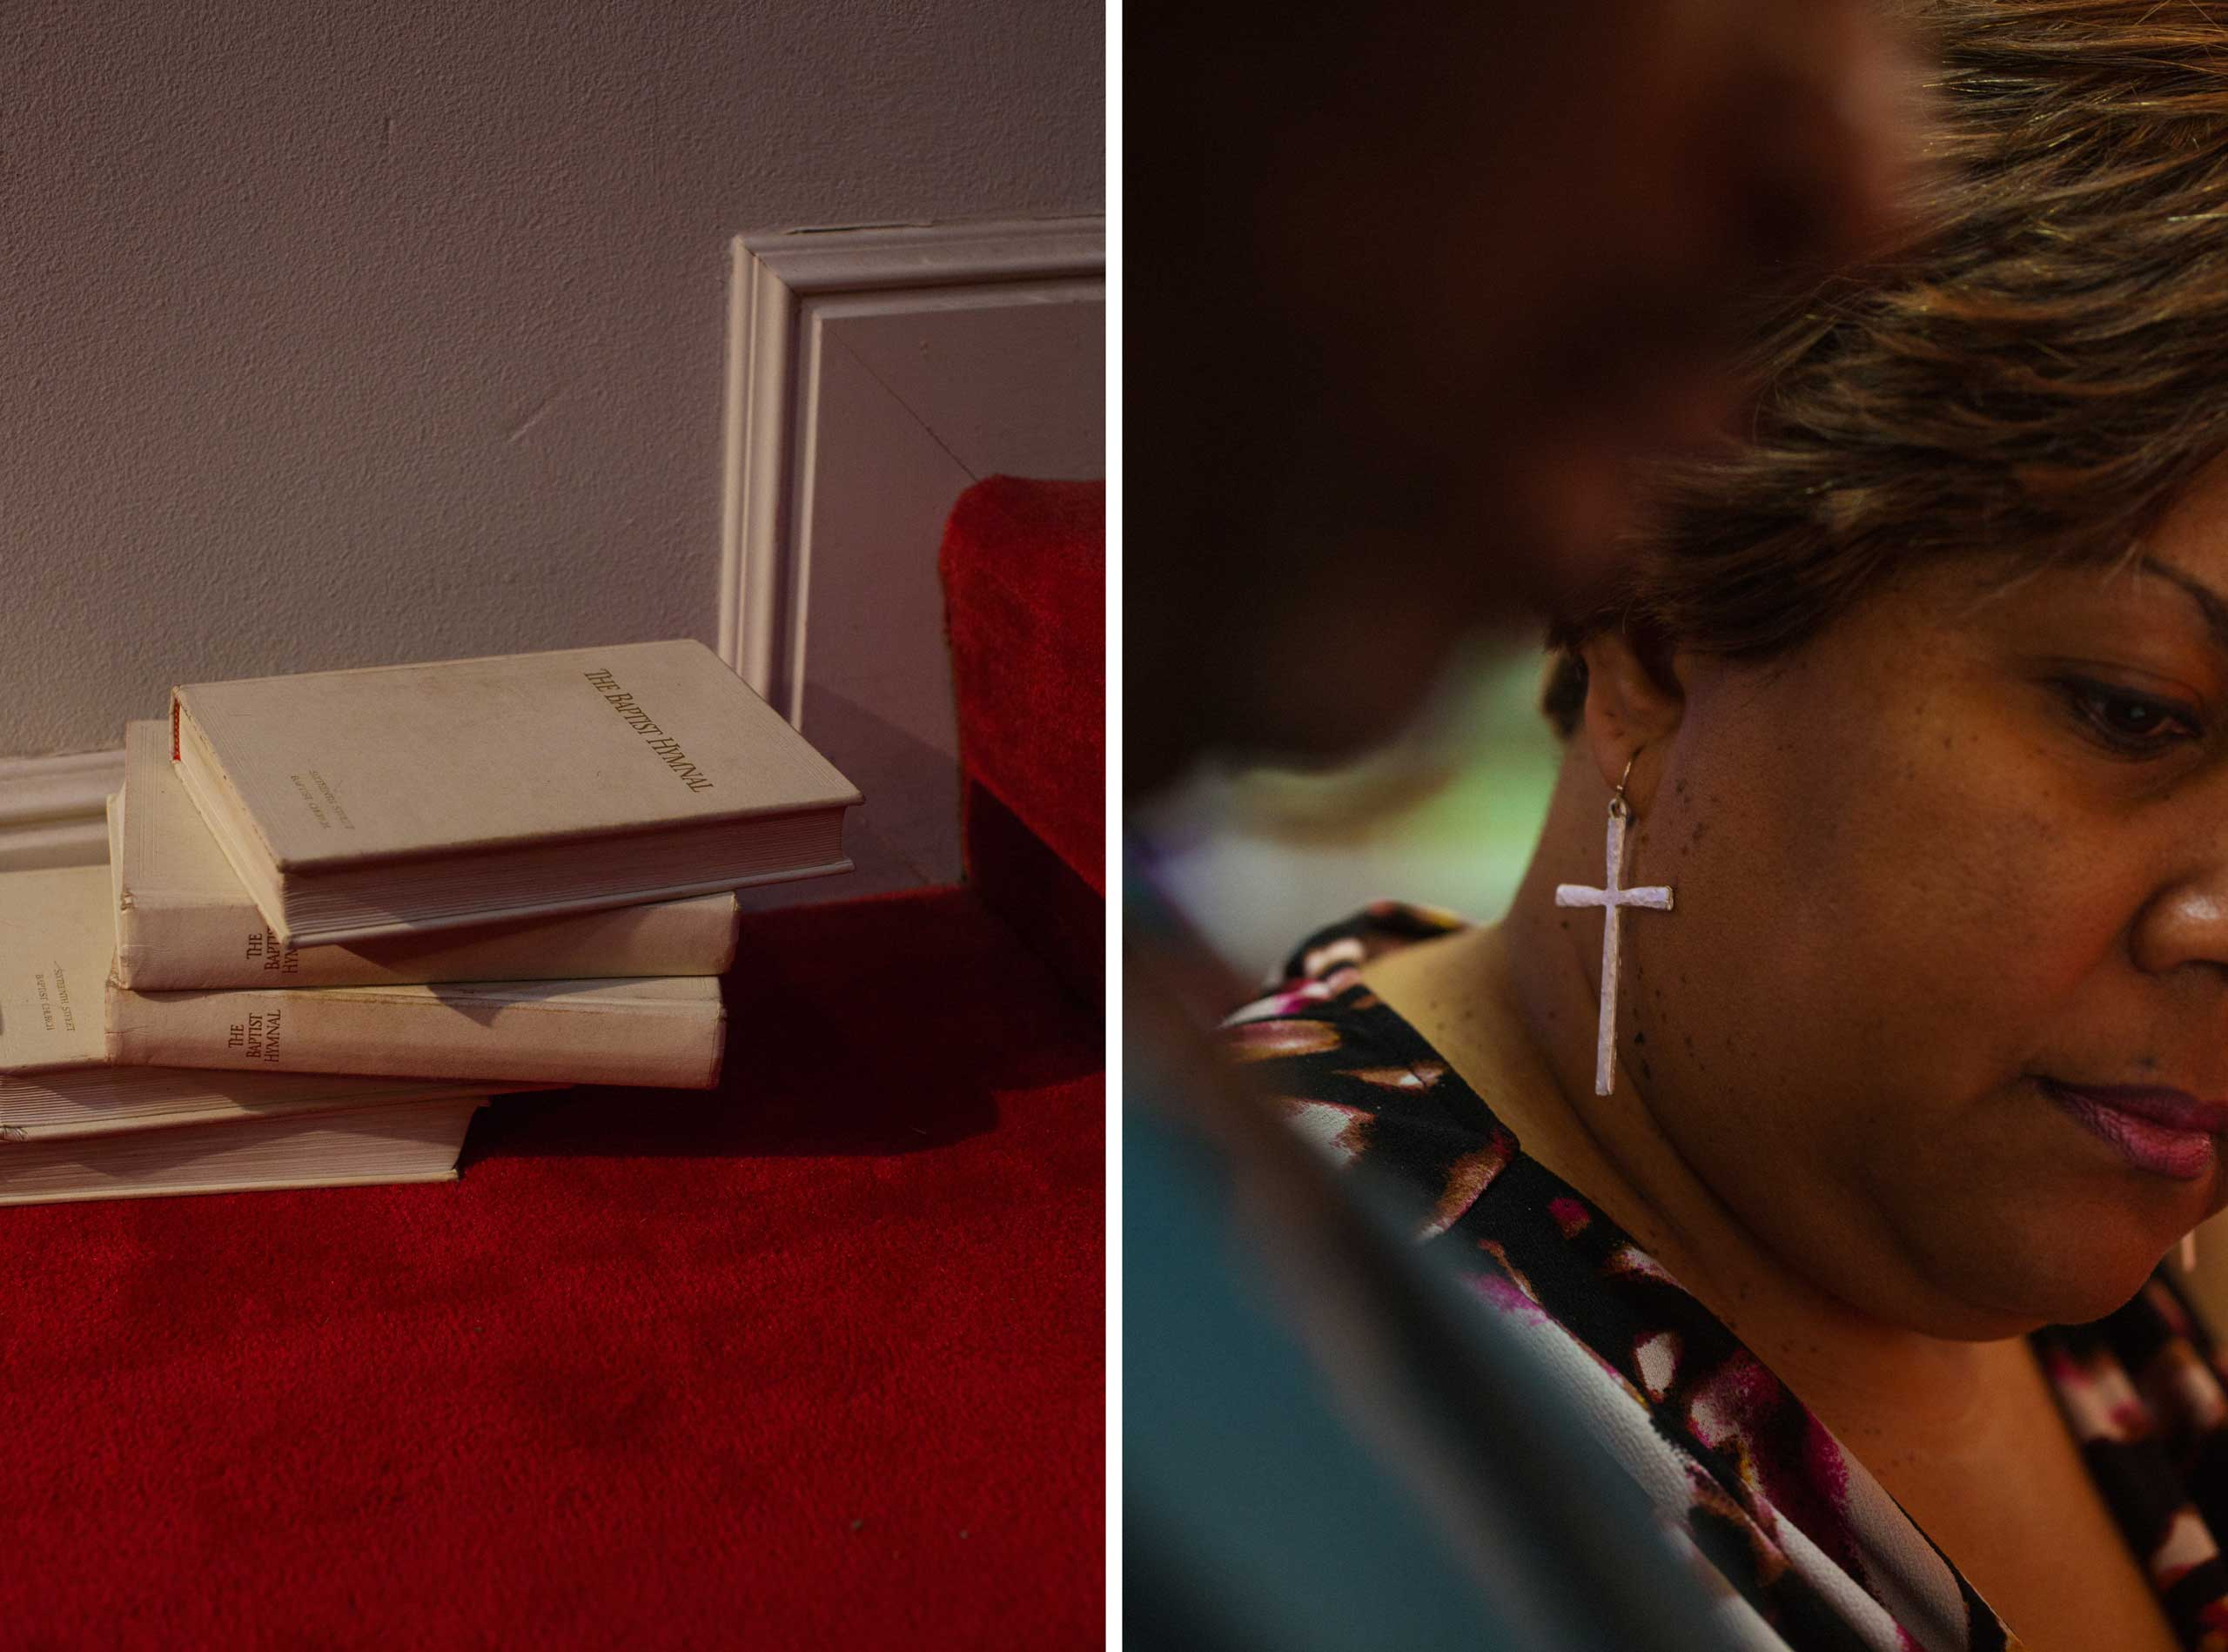 Left: A stack of hymnals at 16th Street Baptist Church. Right: A woman wears cross earrings during a service